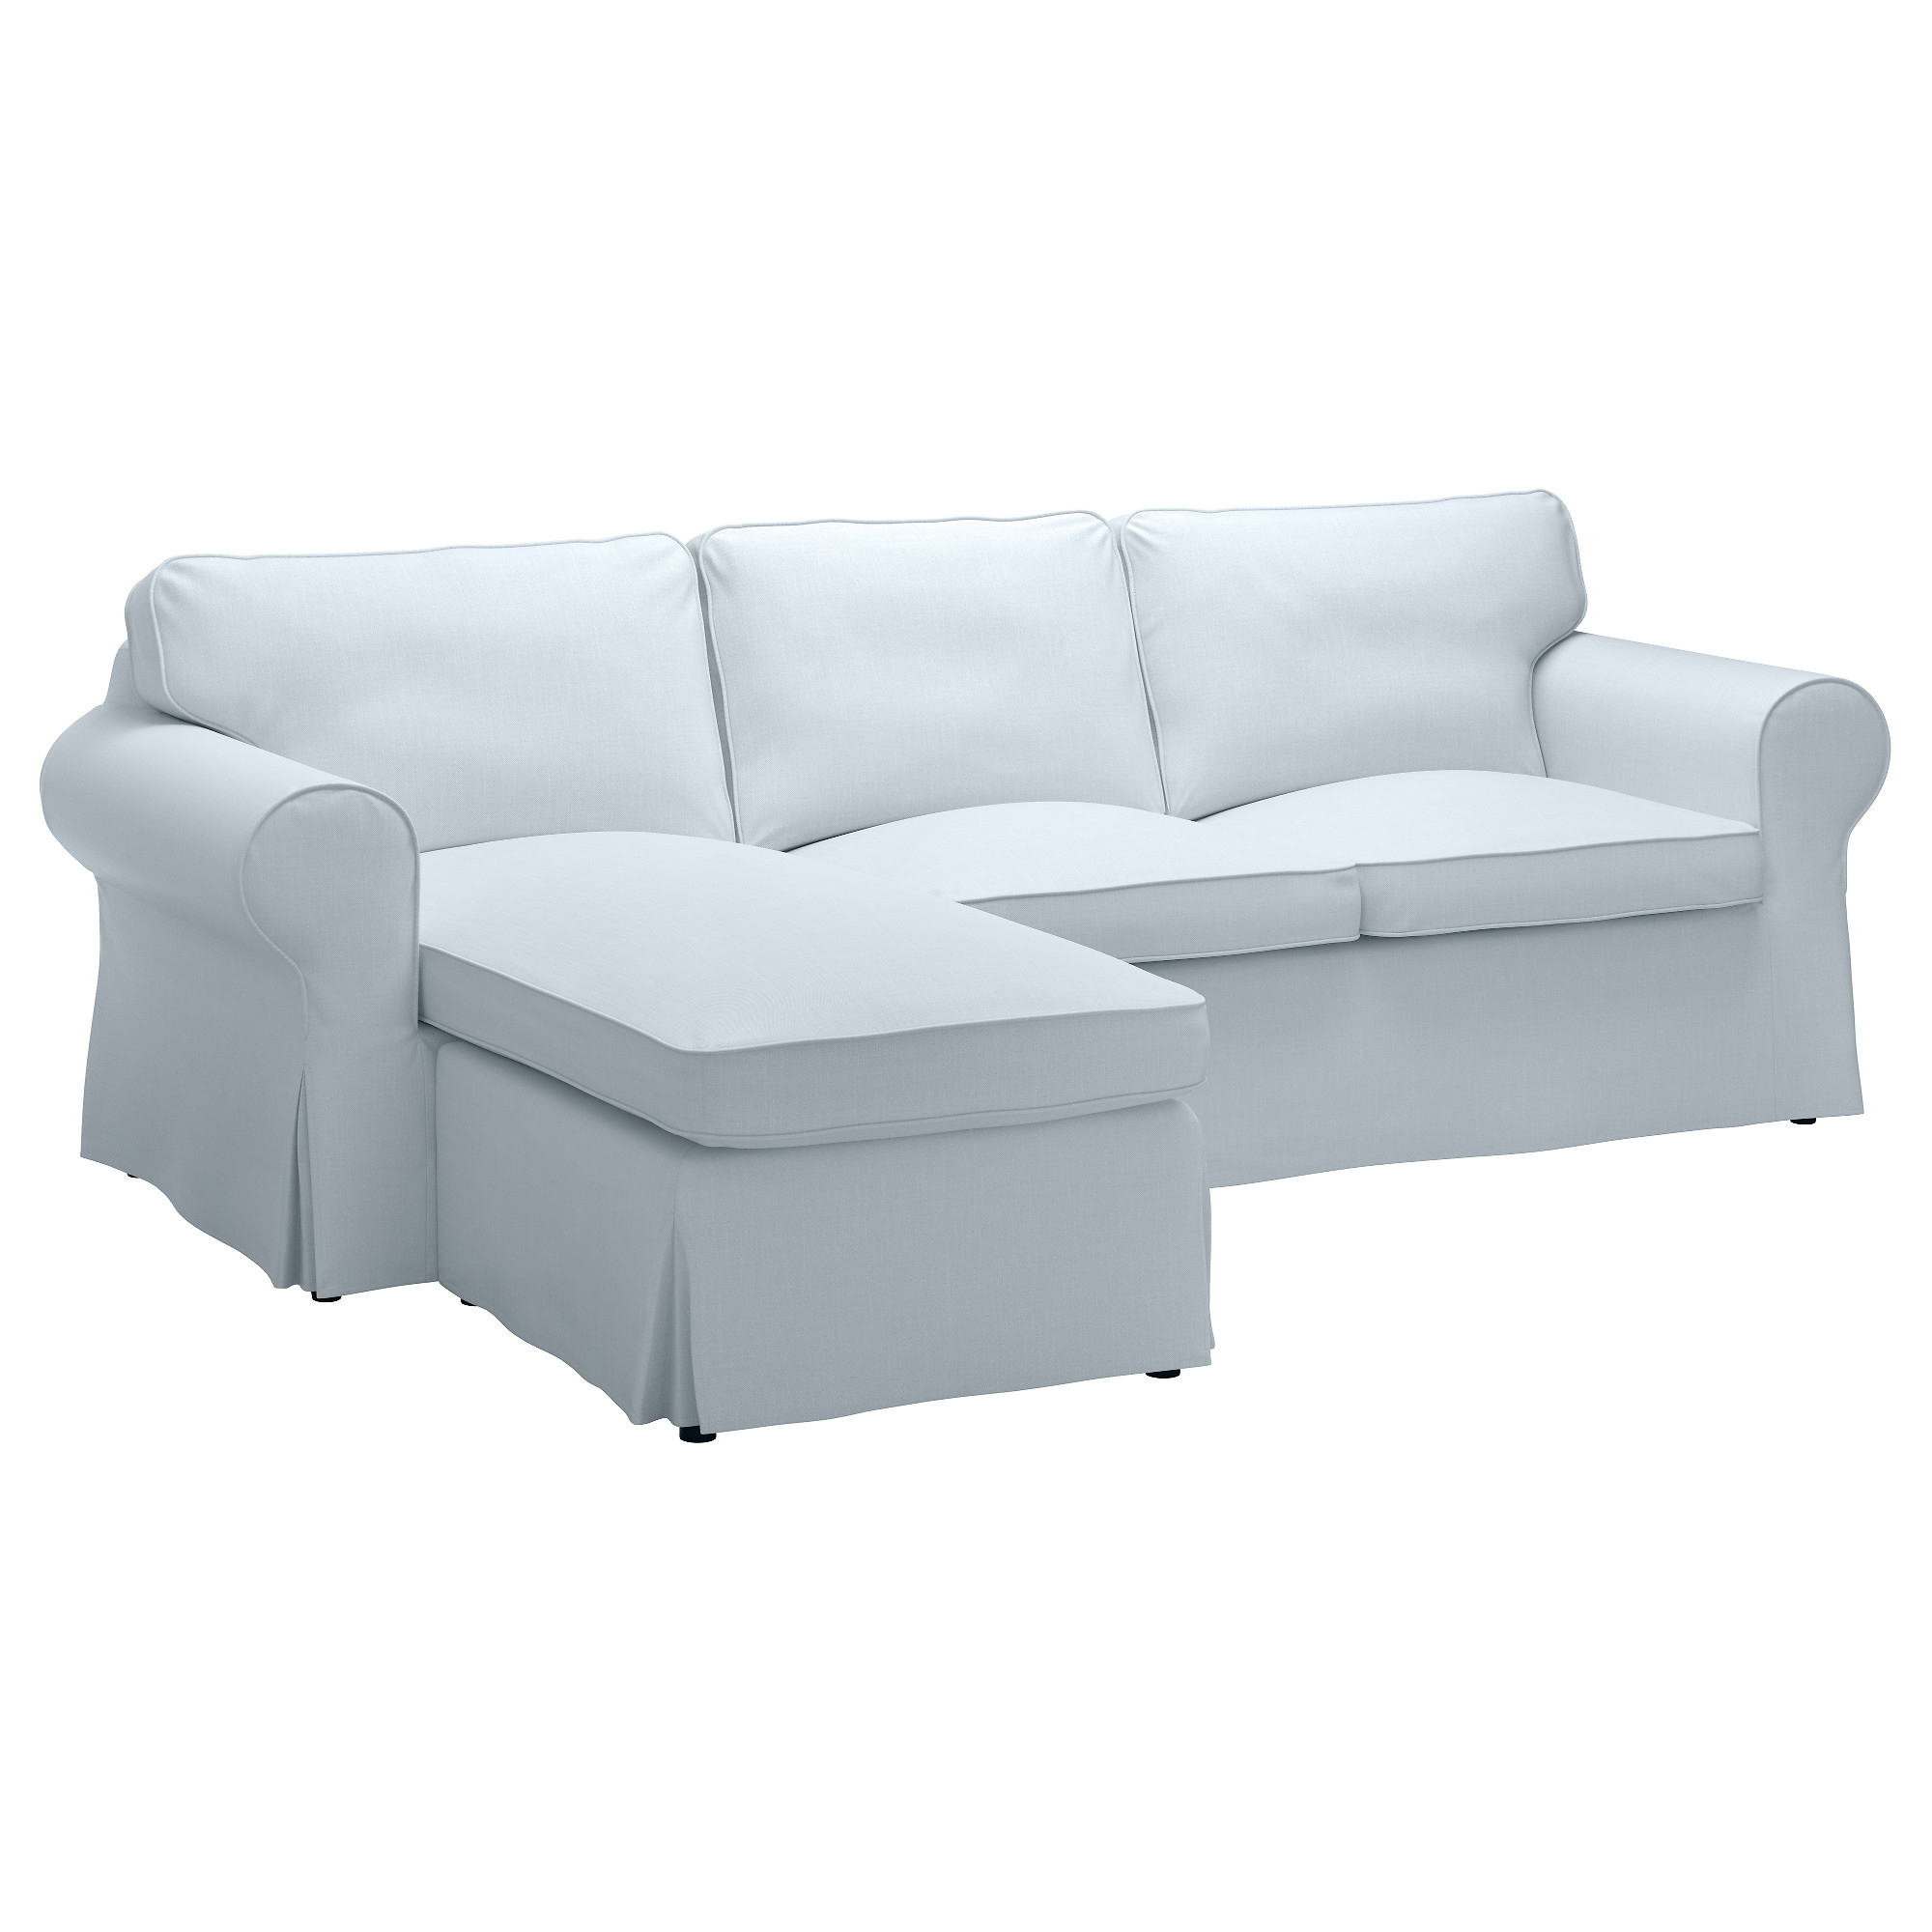 Ektorp Chaises throughout Popular Ektorp Sofa - With Chaise/nordvalla Light Blue - Ikea